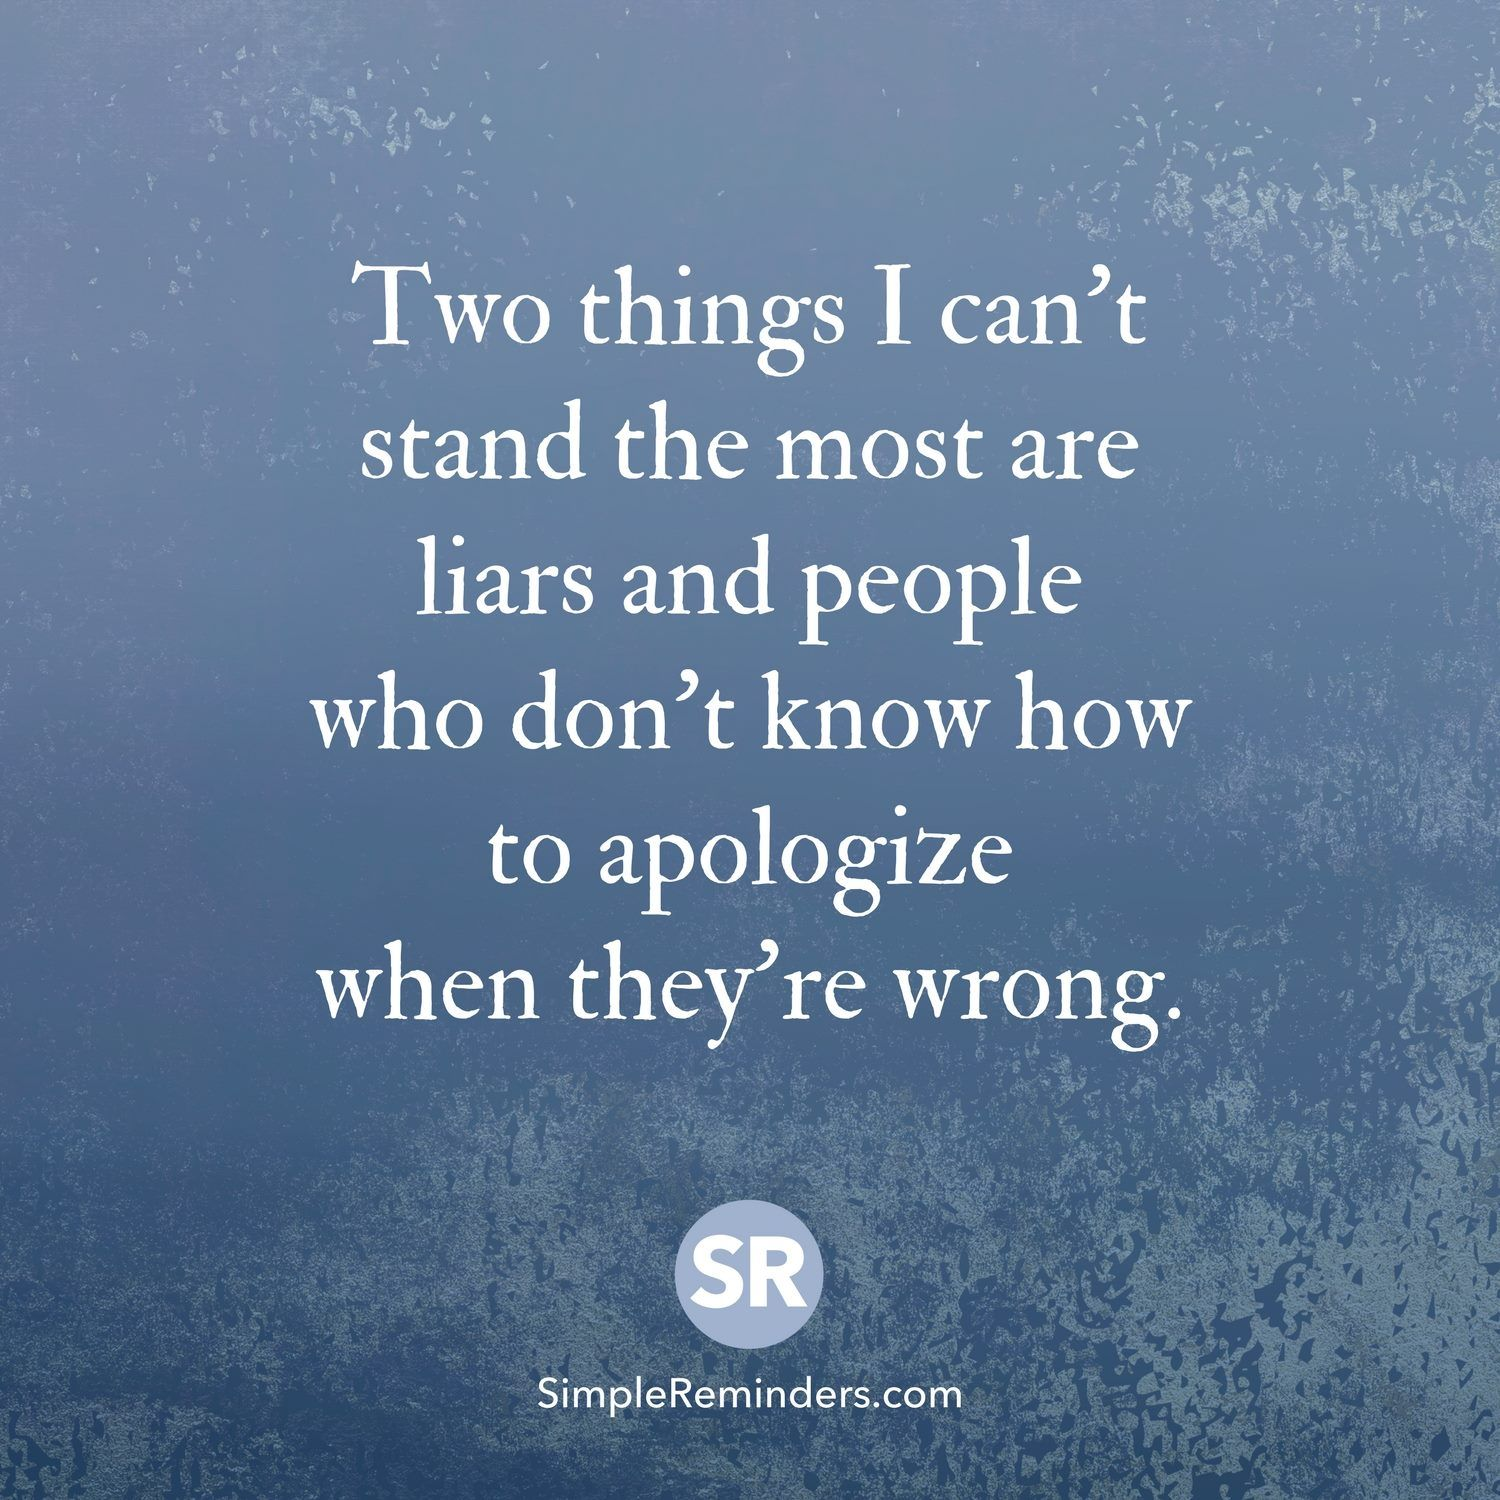 two things i cant stand the most are liars and people who dont know how to apologize when theyre wrong